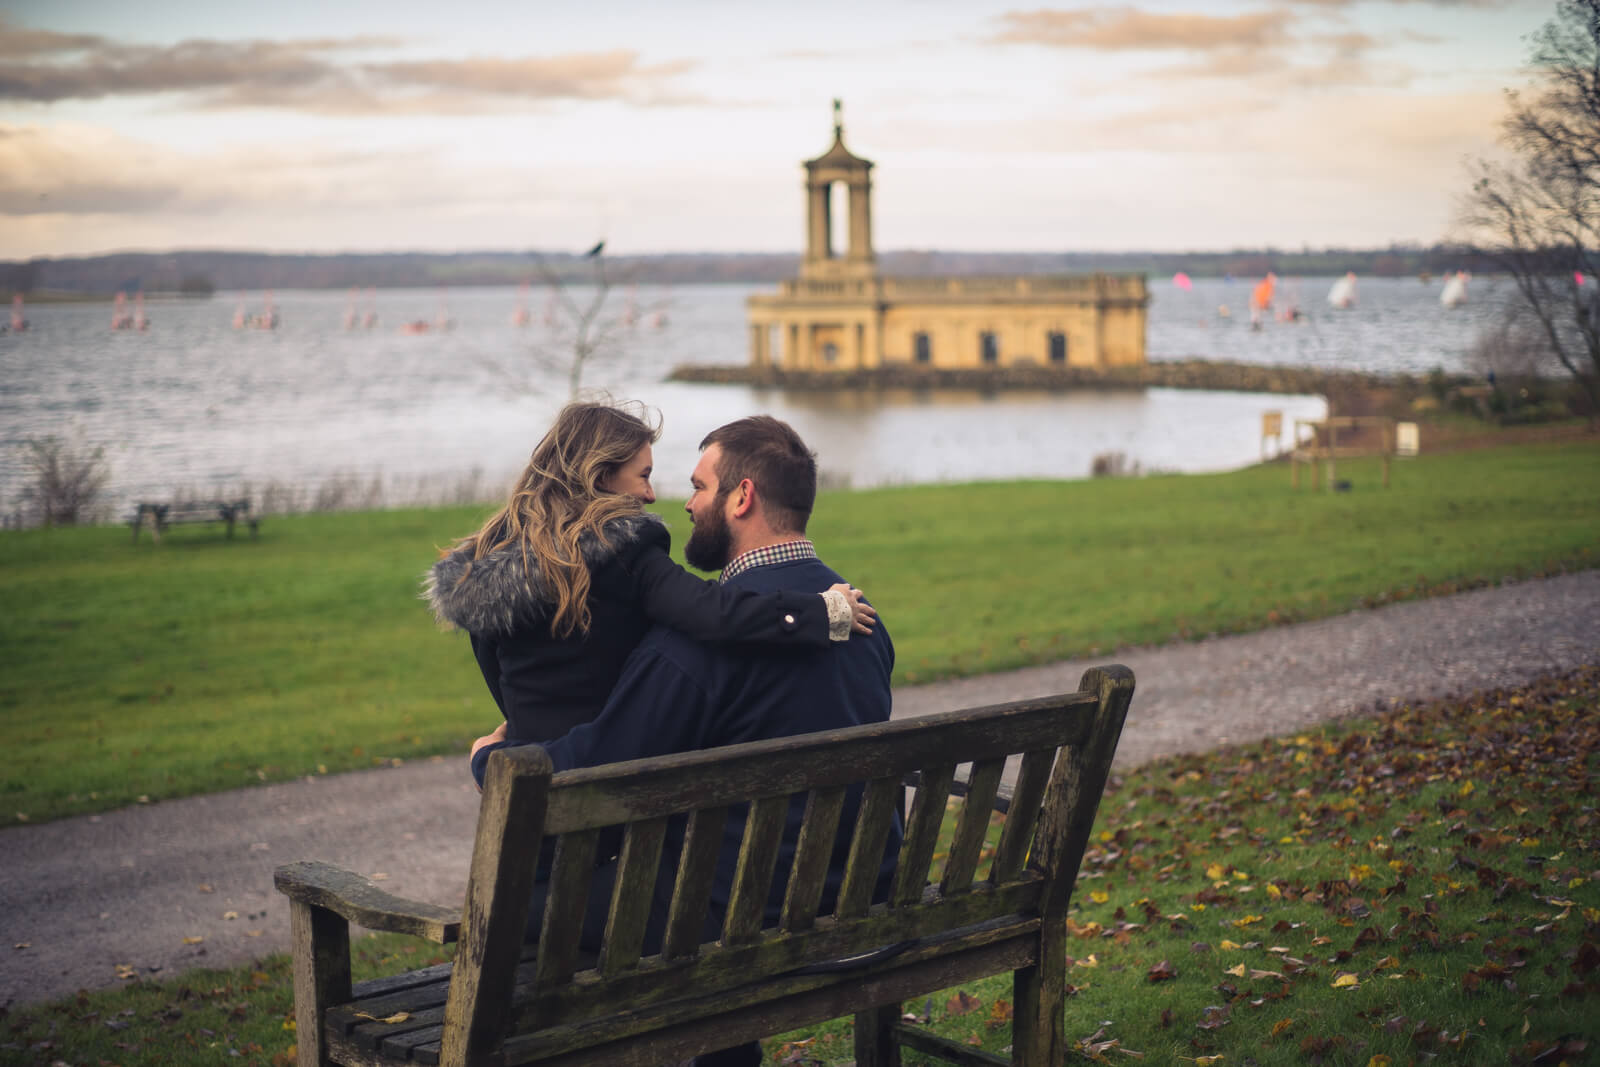 Couple sit on a bench looking at each other with lake and church in the background